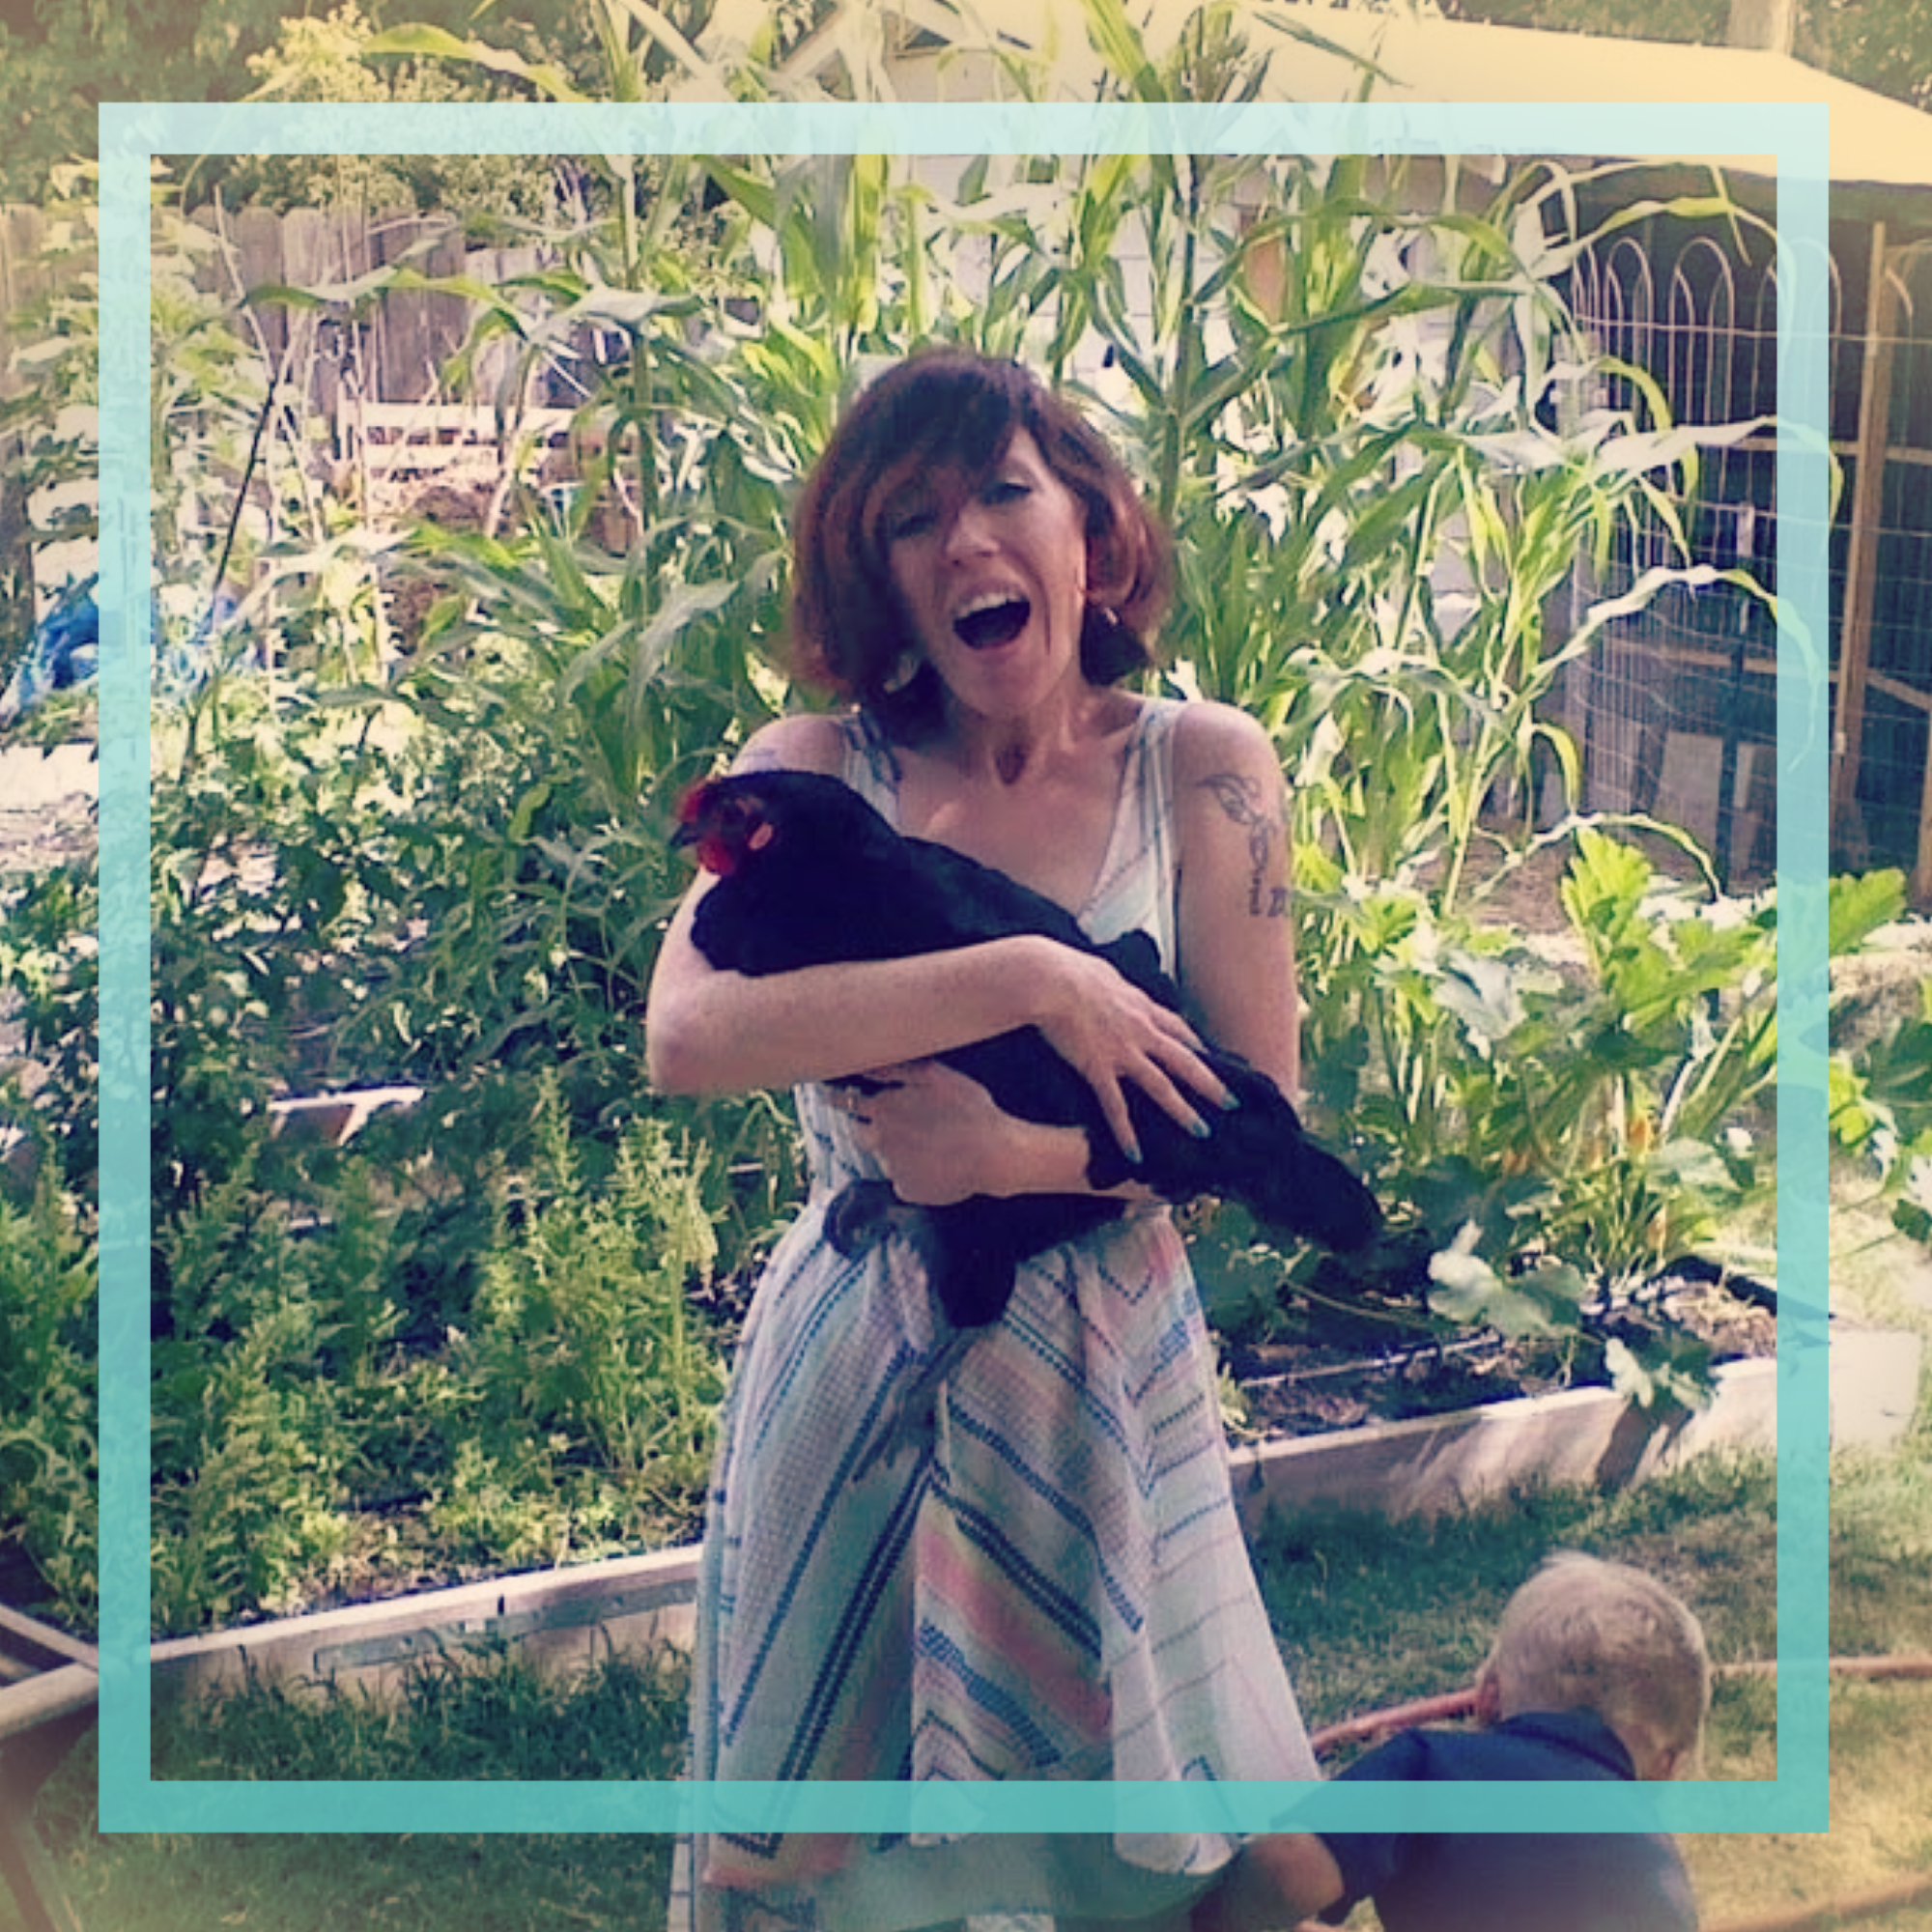 a square pic of me a white nonbinary with shoulderlength red hair in this picture and wearing a white and blue striped summer dress holding a chicken in a firends garden while yelling something so my mouth is wide open and there is lots of tall green corn stalks in the background an odd photo I know nut i love it